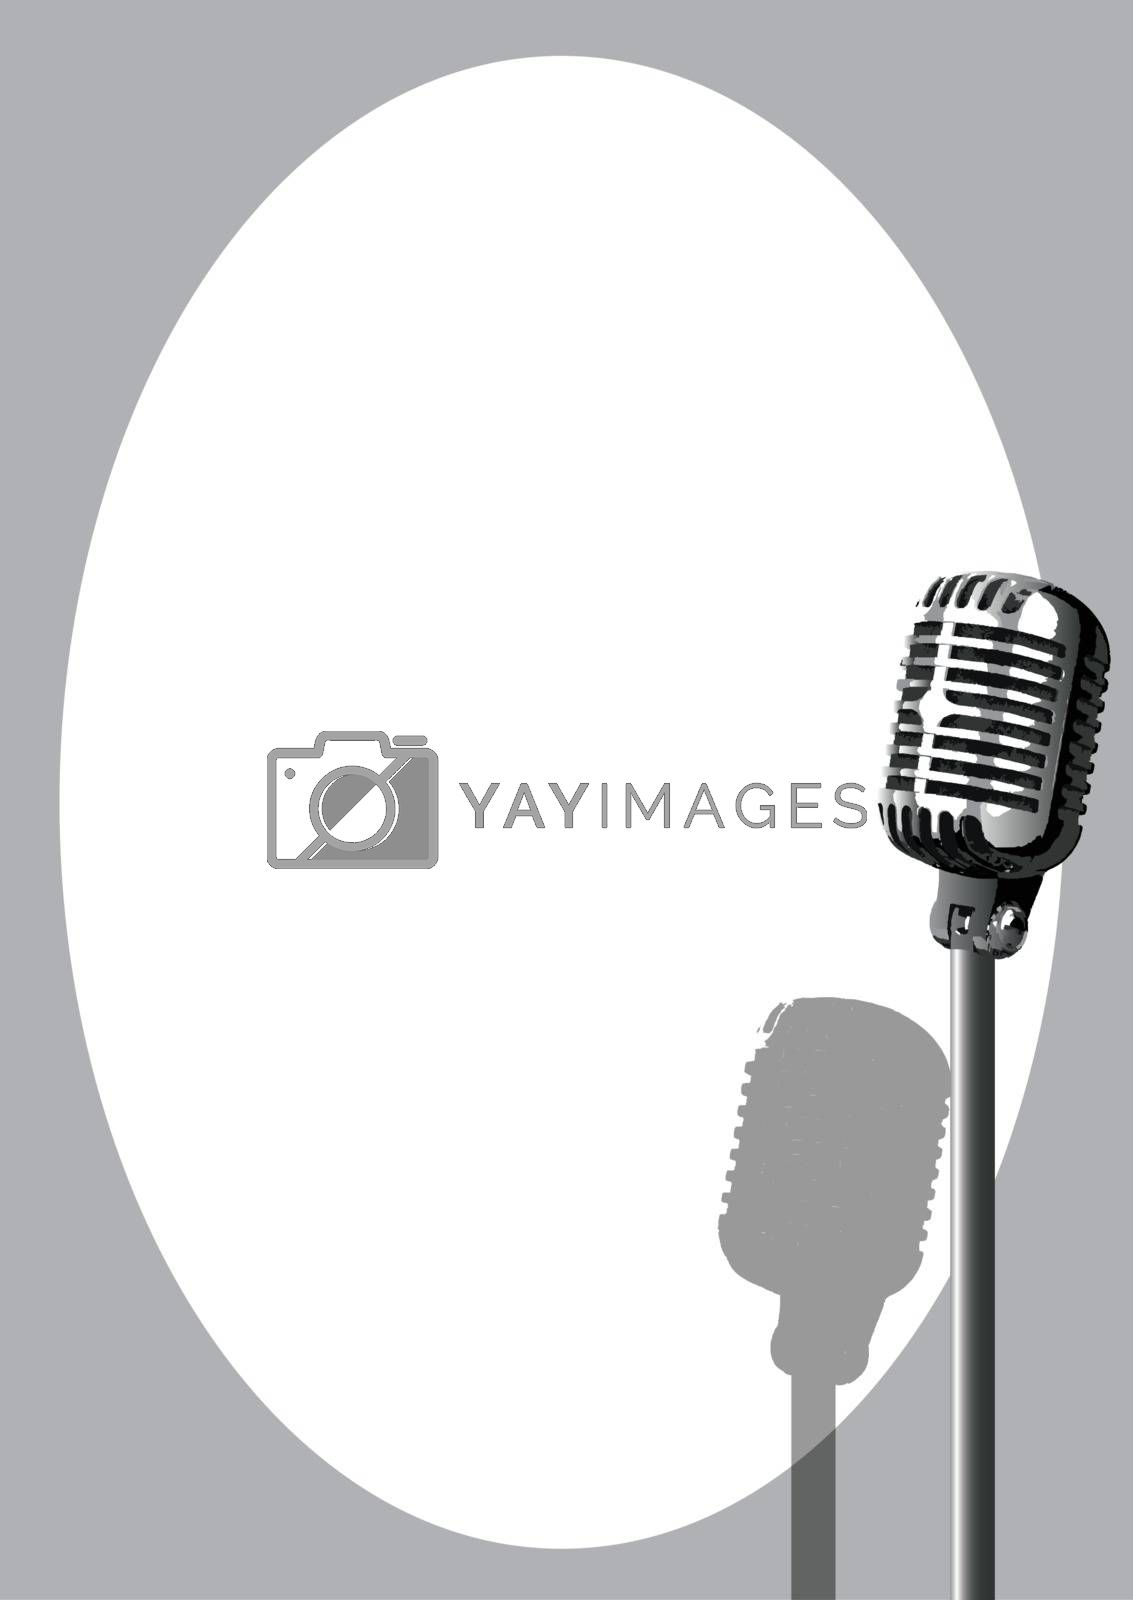 A microphone ready on stage against a white background